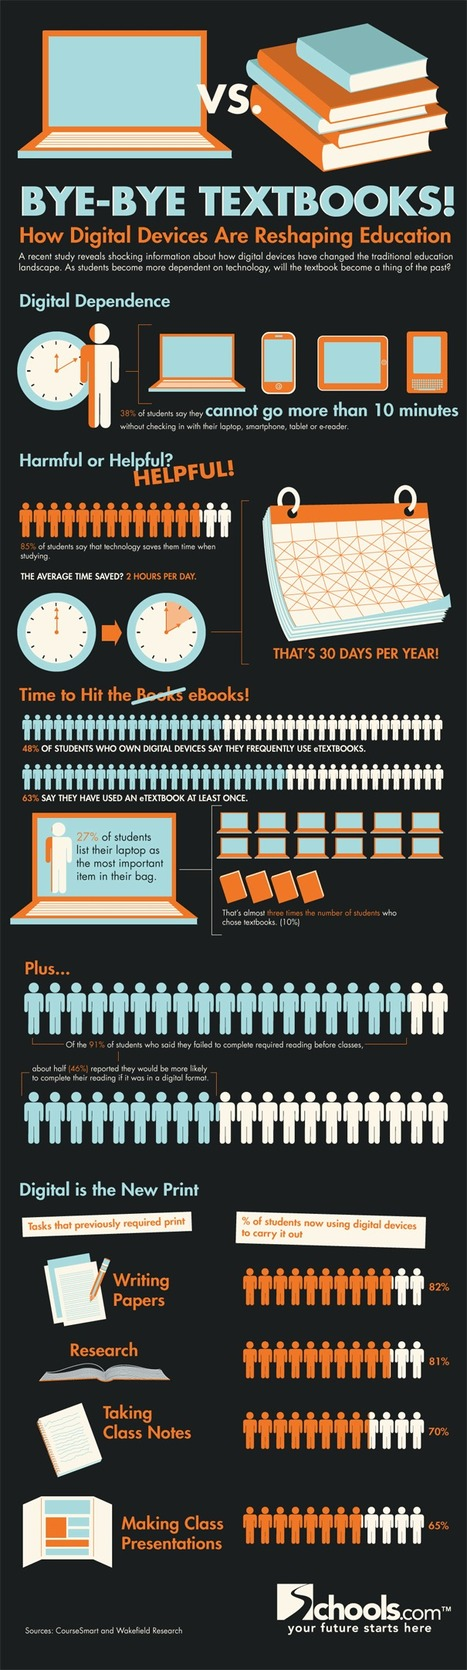 Bye-Bye Textbooks! How Digital Devices Are Reshaping Education Infographic | SM | Scoop.it